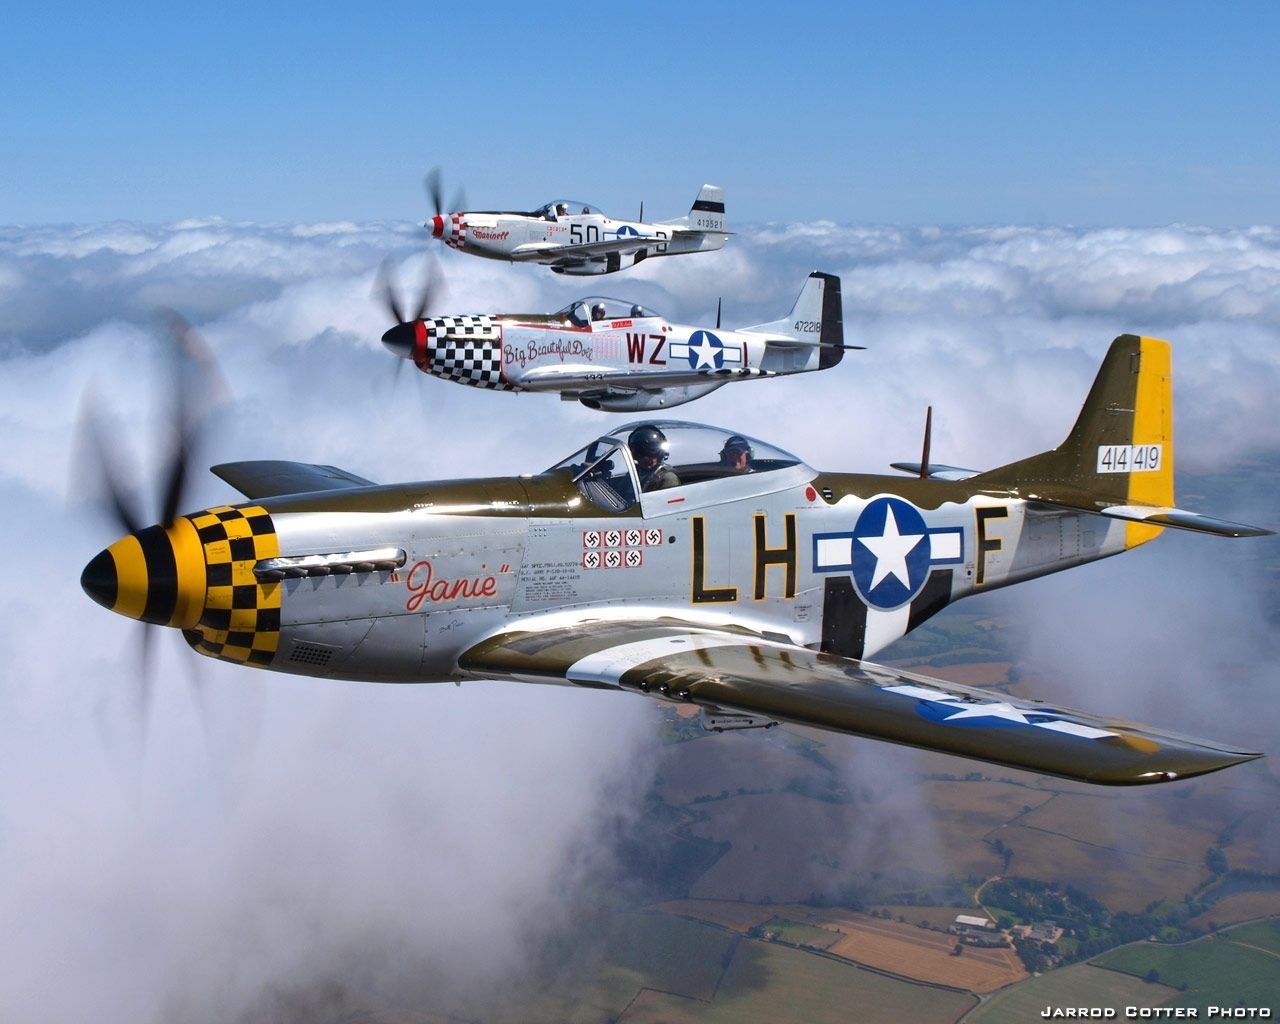 P51 D Mustangs Of World War Ii P51 Mustang Vintage Aircraft